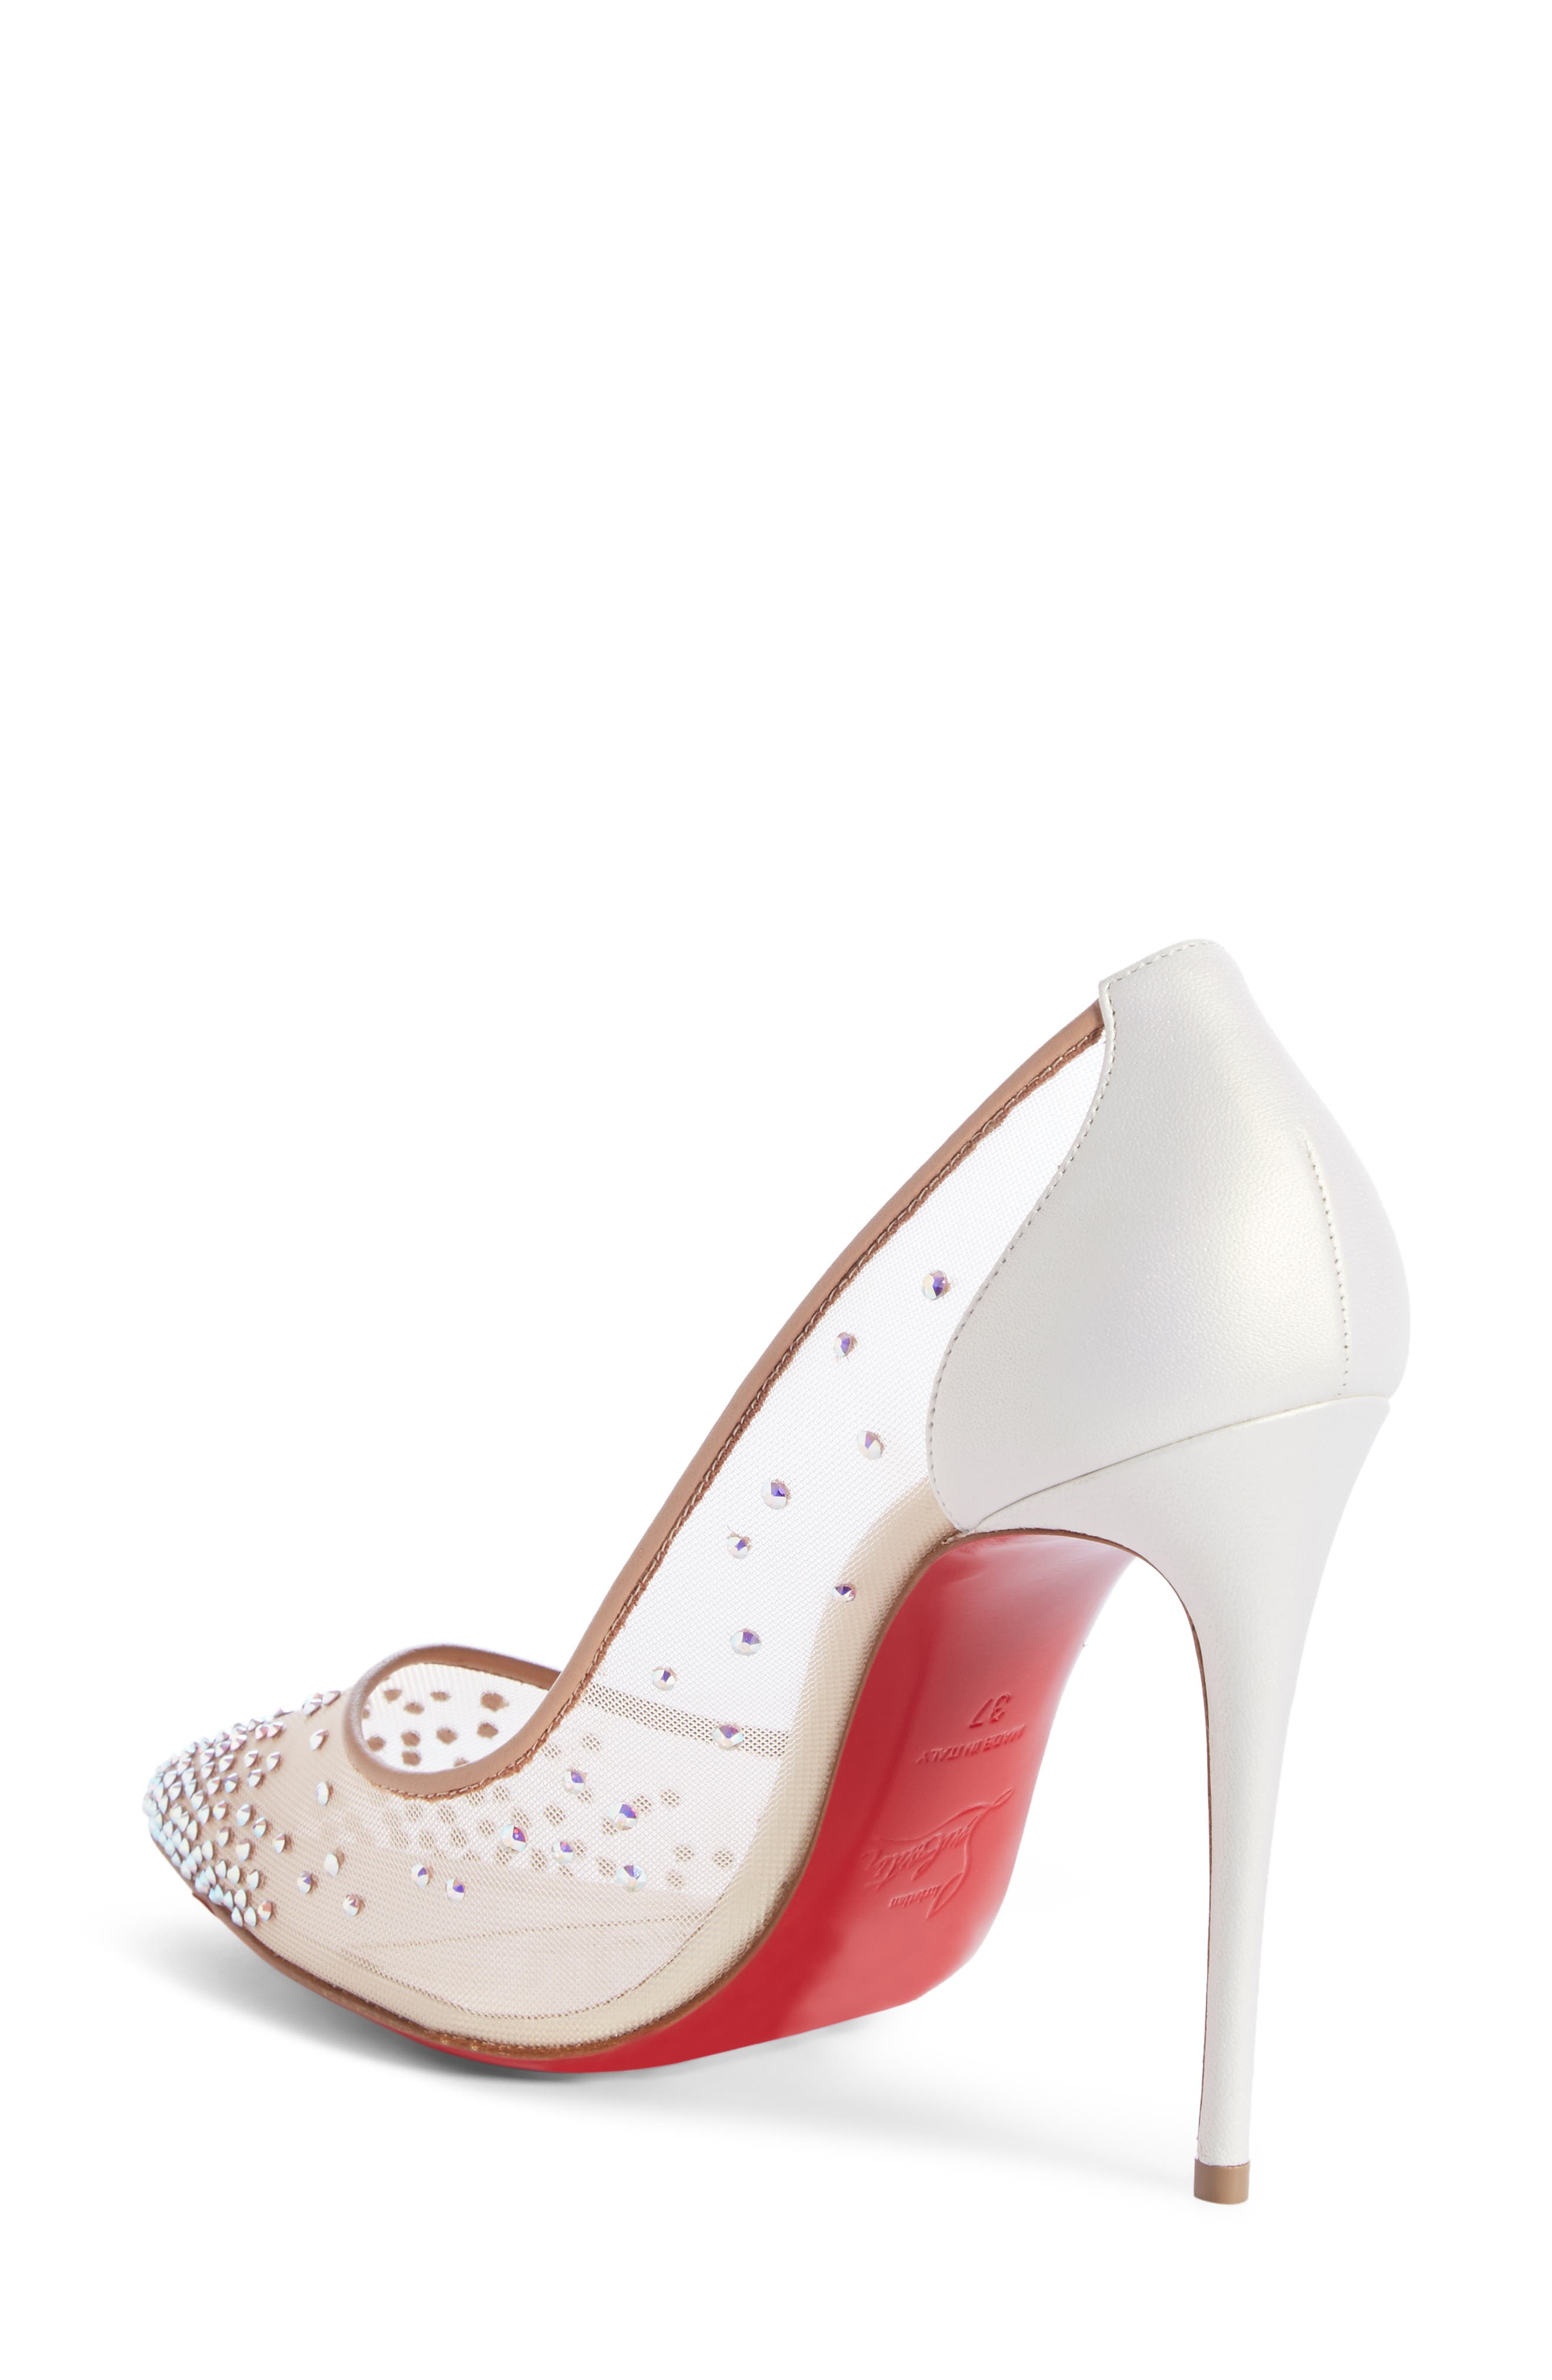 Follies Strass Pointy Toe Pump,                             Alternate thumbnail 2, color,                             SNOW/ NUDE